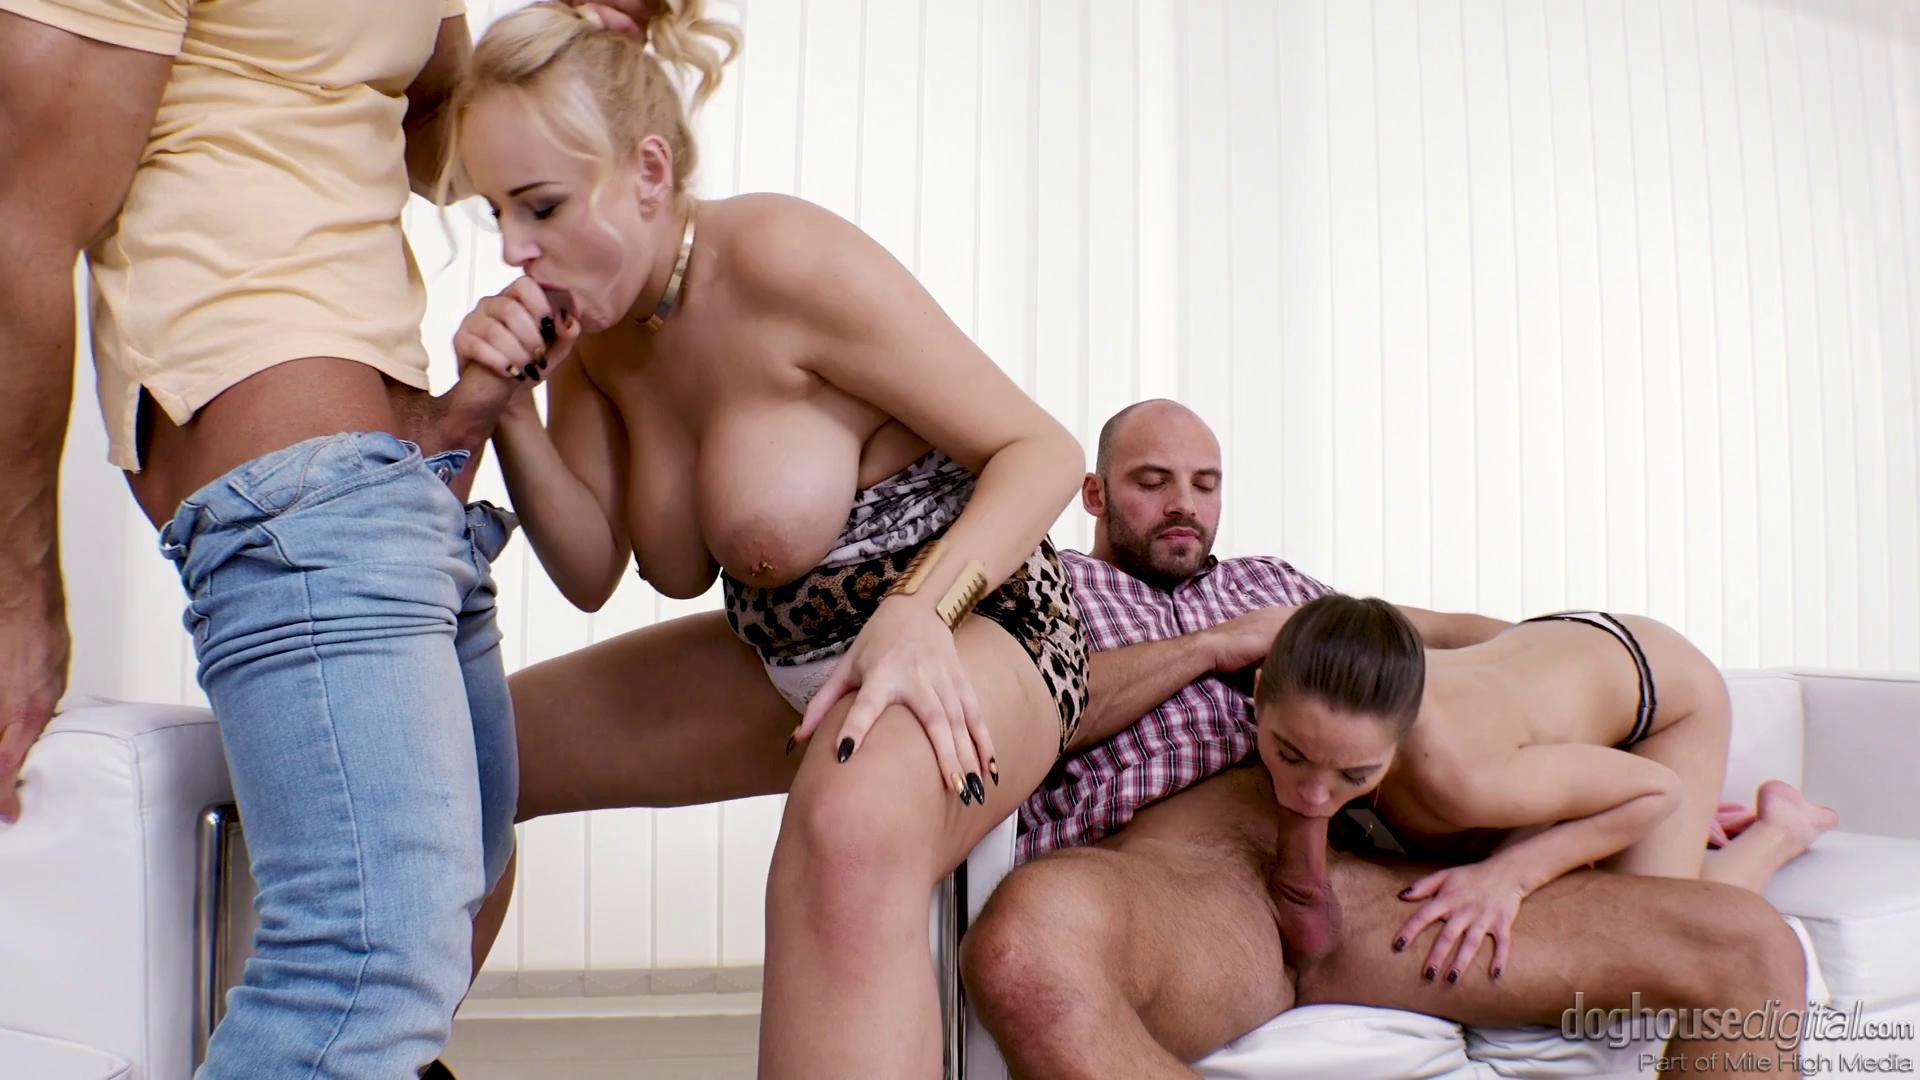 DogHouseDigital – Angel Wicky And Eveline Darling I Have Your Boyfriend Now